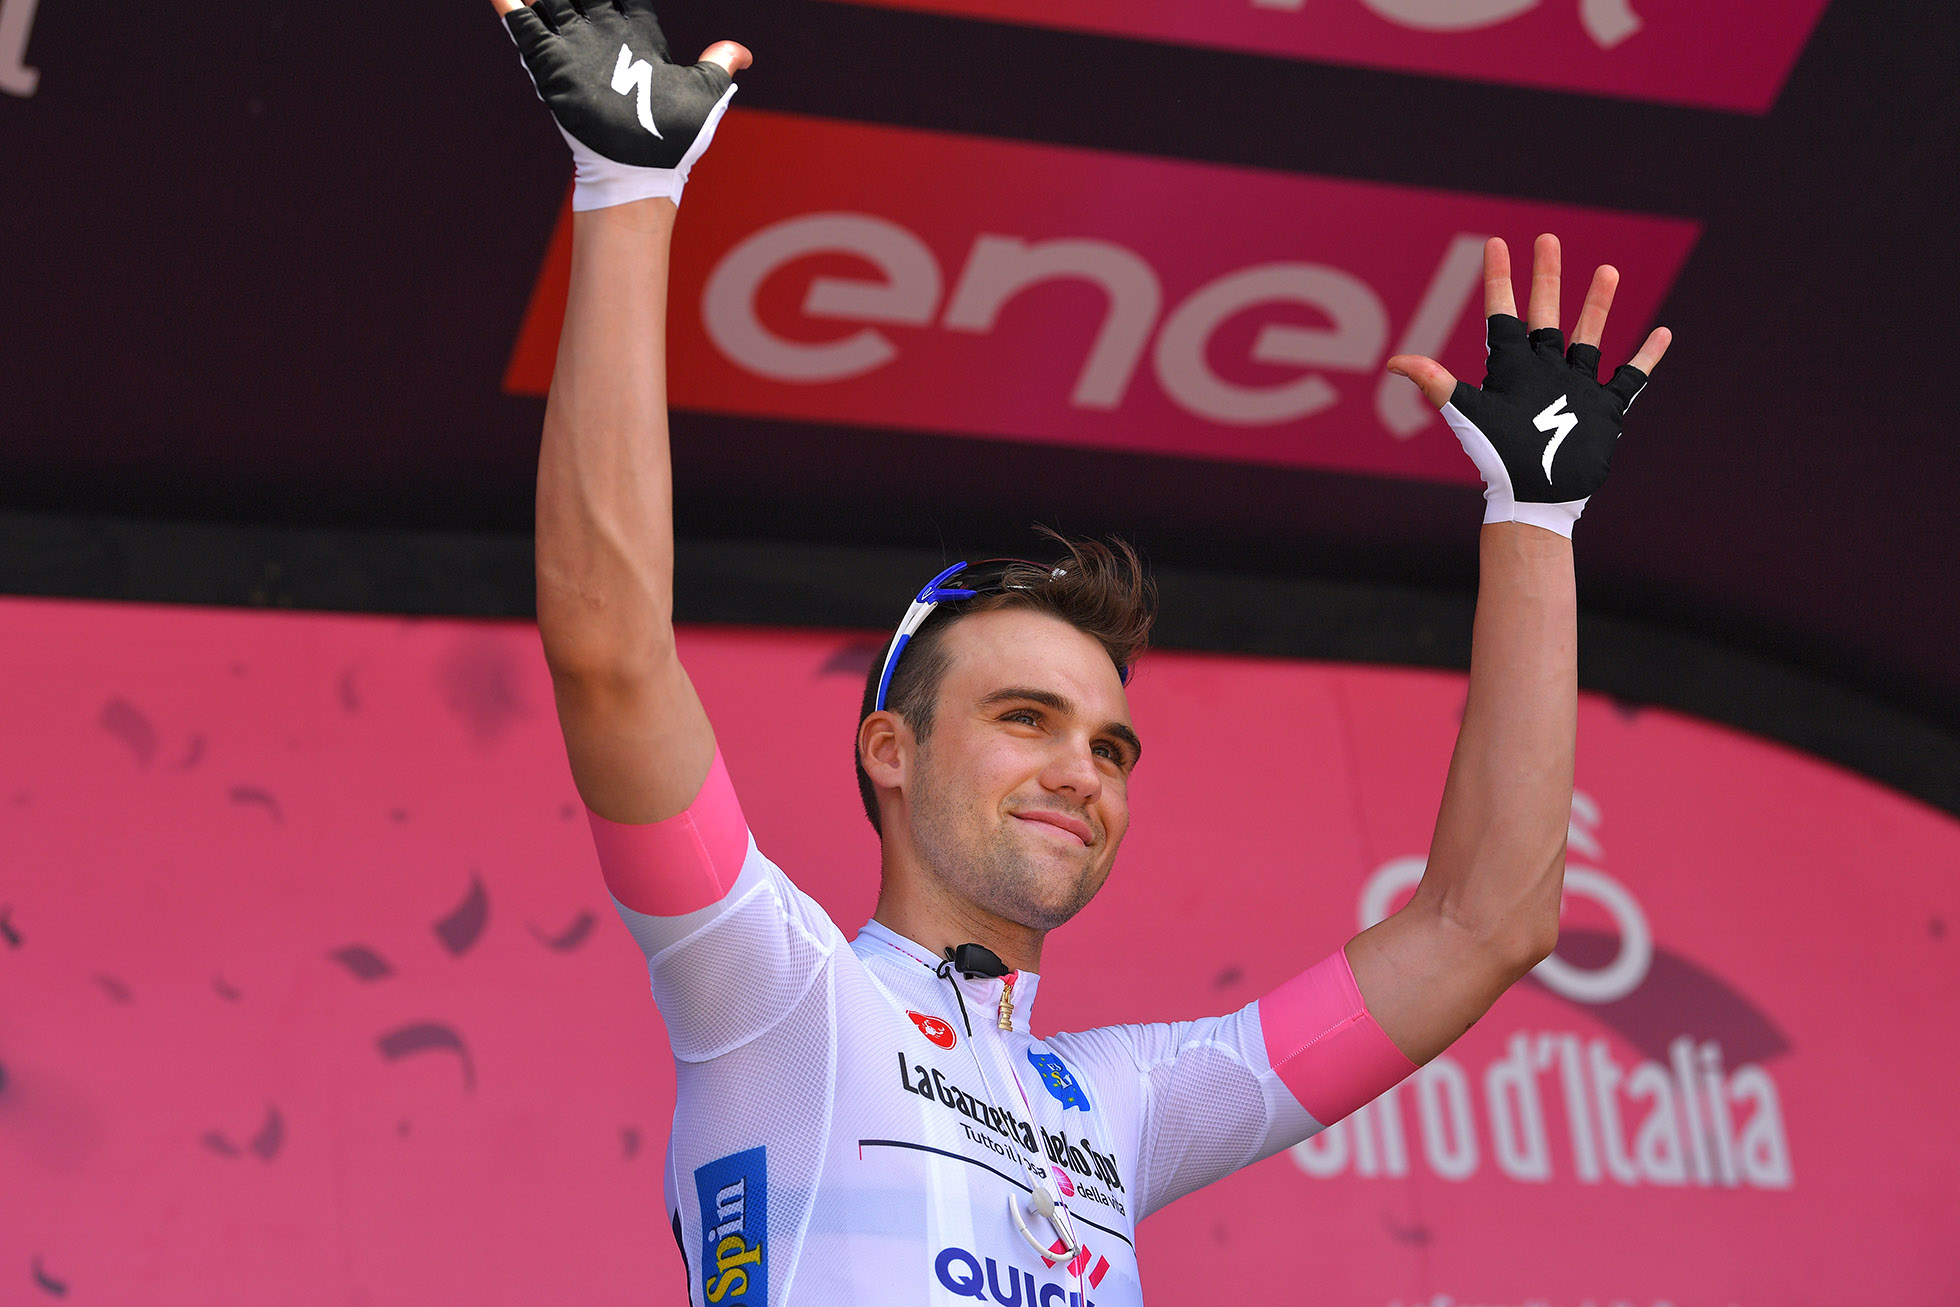 TEL AVIV, ISRAEL - MAY 05: Start / Podium / Maximilian Schachmann of Germany and Team Quick-Step Floors White Best Young Rider Jersey / during the 101th Tour of Italy 2018, Stage 2 a 167km stage from Haifa to Tel Aviv / Giro d'Italia / on May 5, 2018 in Tel Aviv, Israel. (Photo by Tim de Waele/Getty Images)